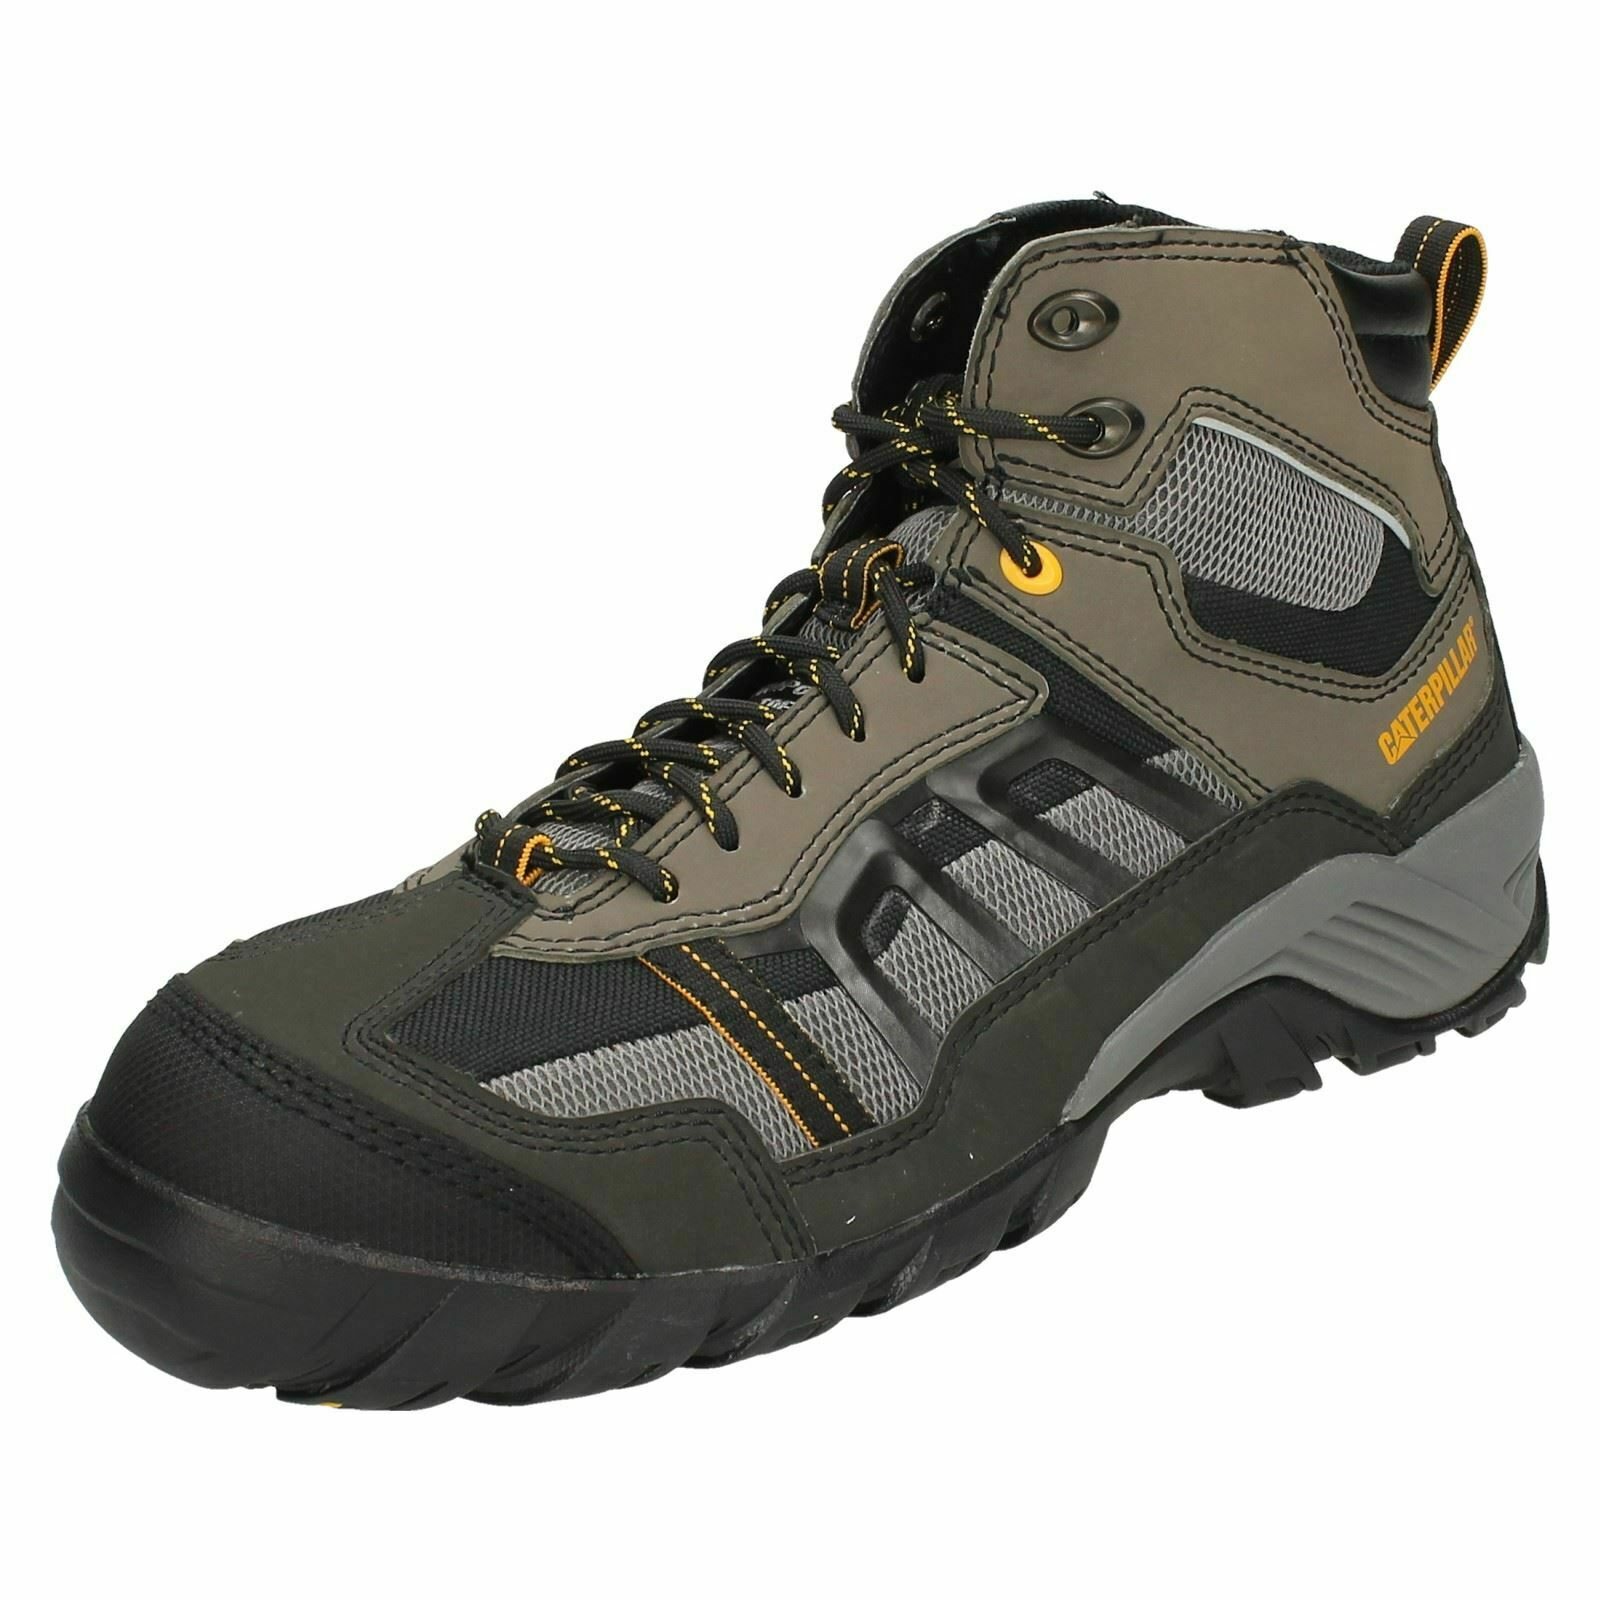 Mens Caterpillar Casual Lace Up Hiker Boots 'Formation Hi'